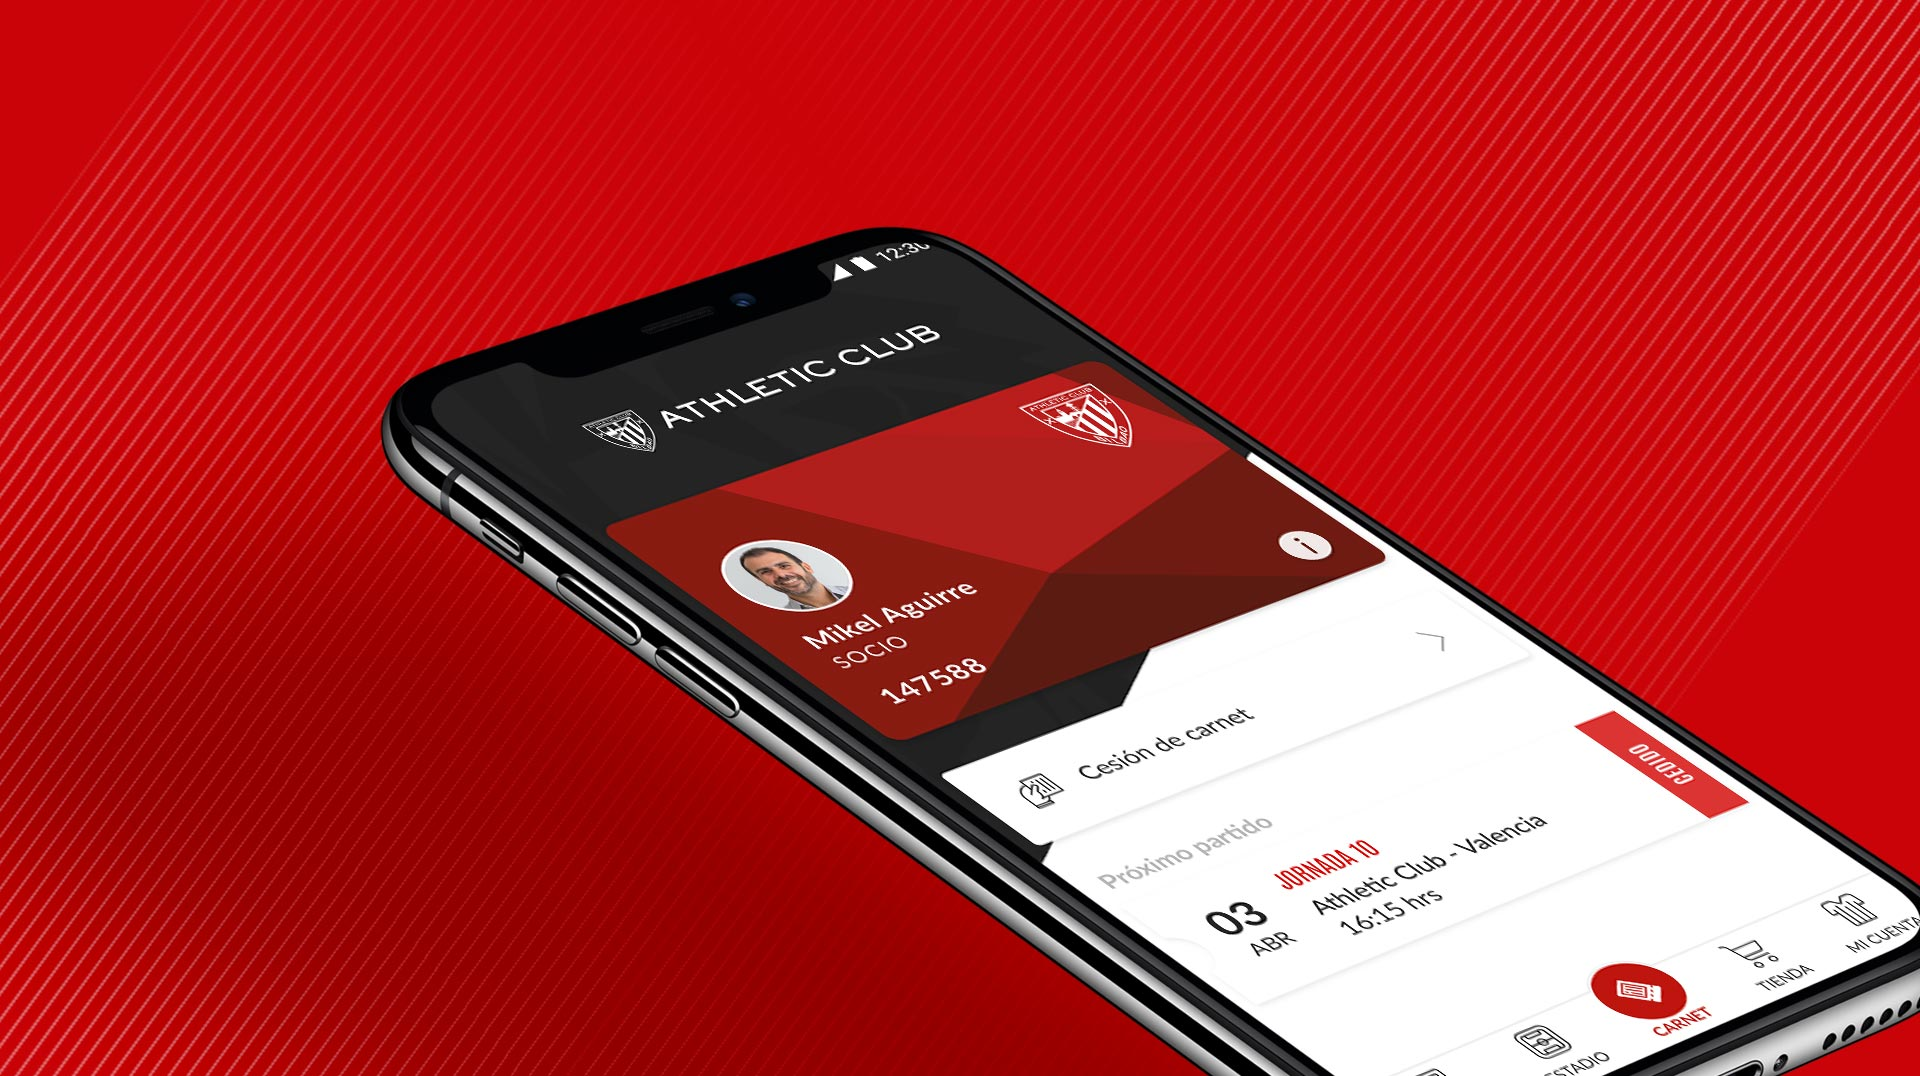 ATHLETICKET App: here is the digital card